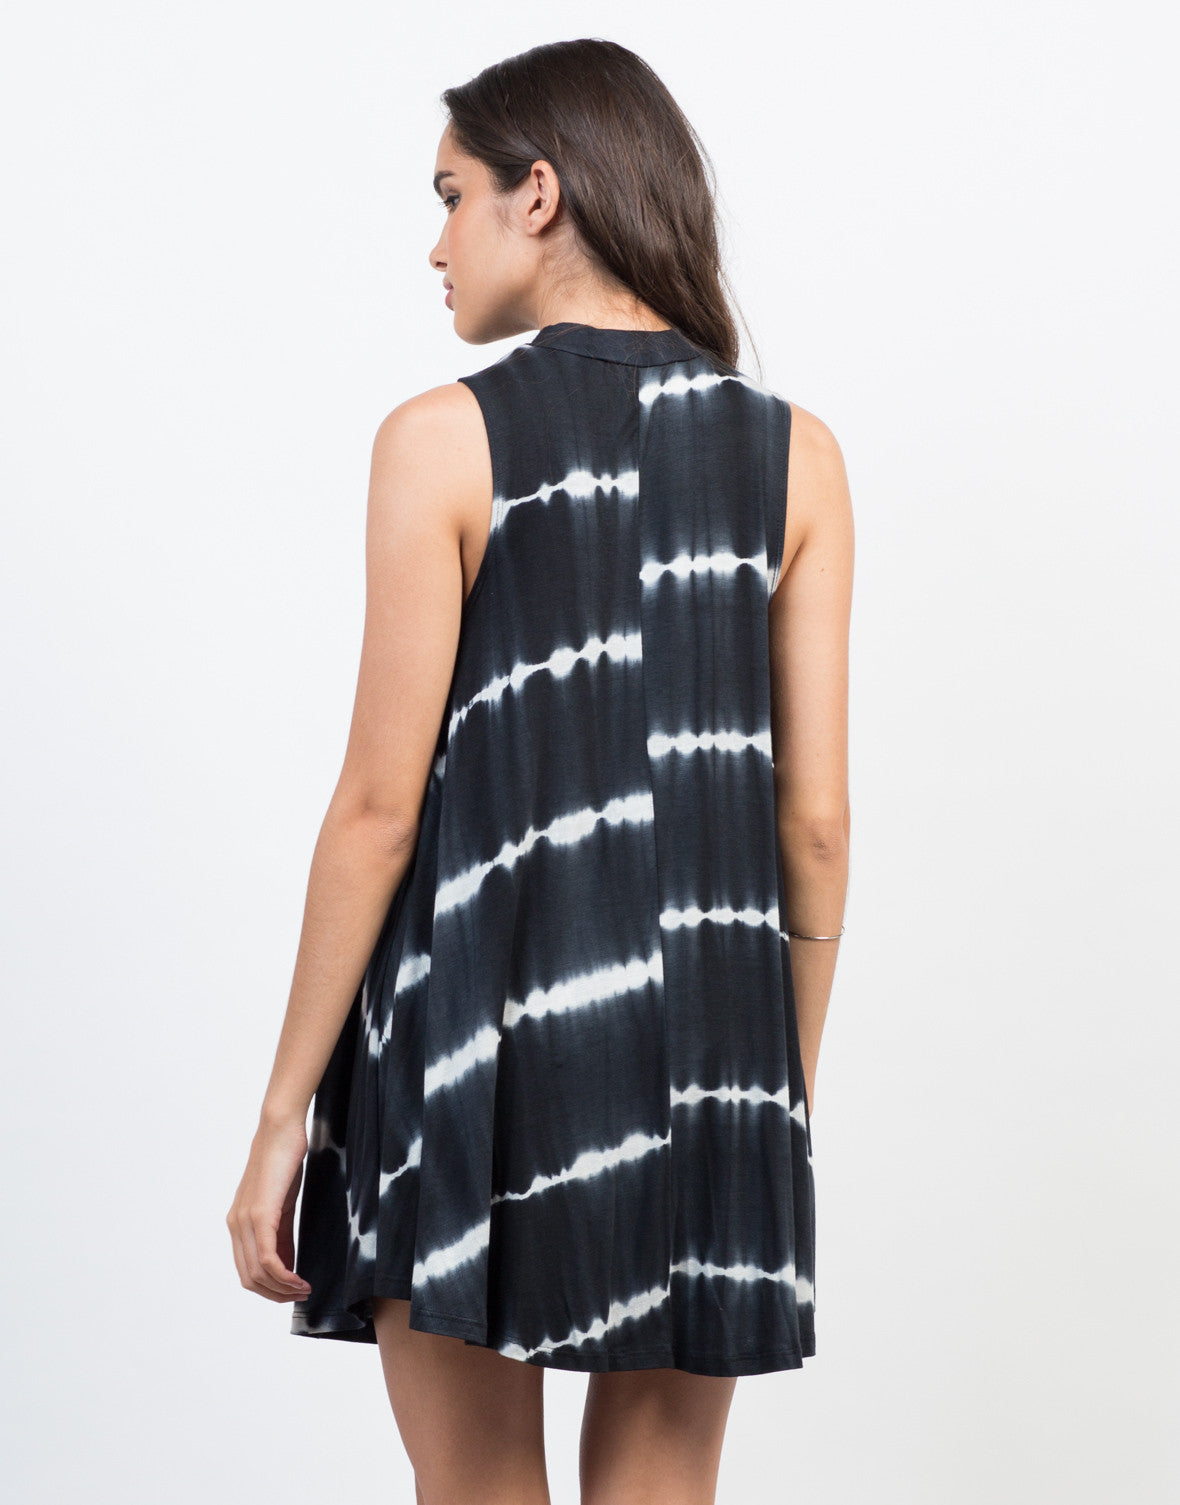 Back View of Swing into Tie-Dye Dress